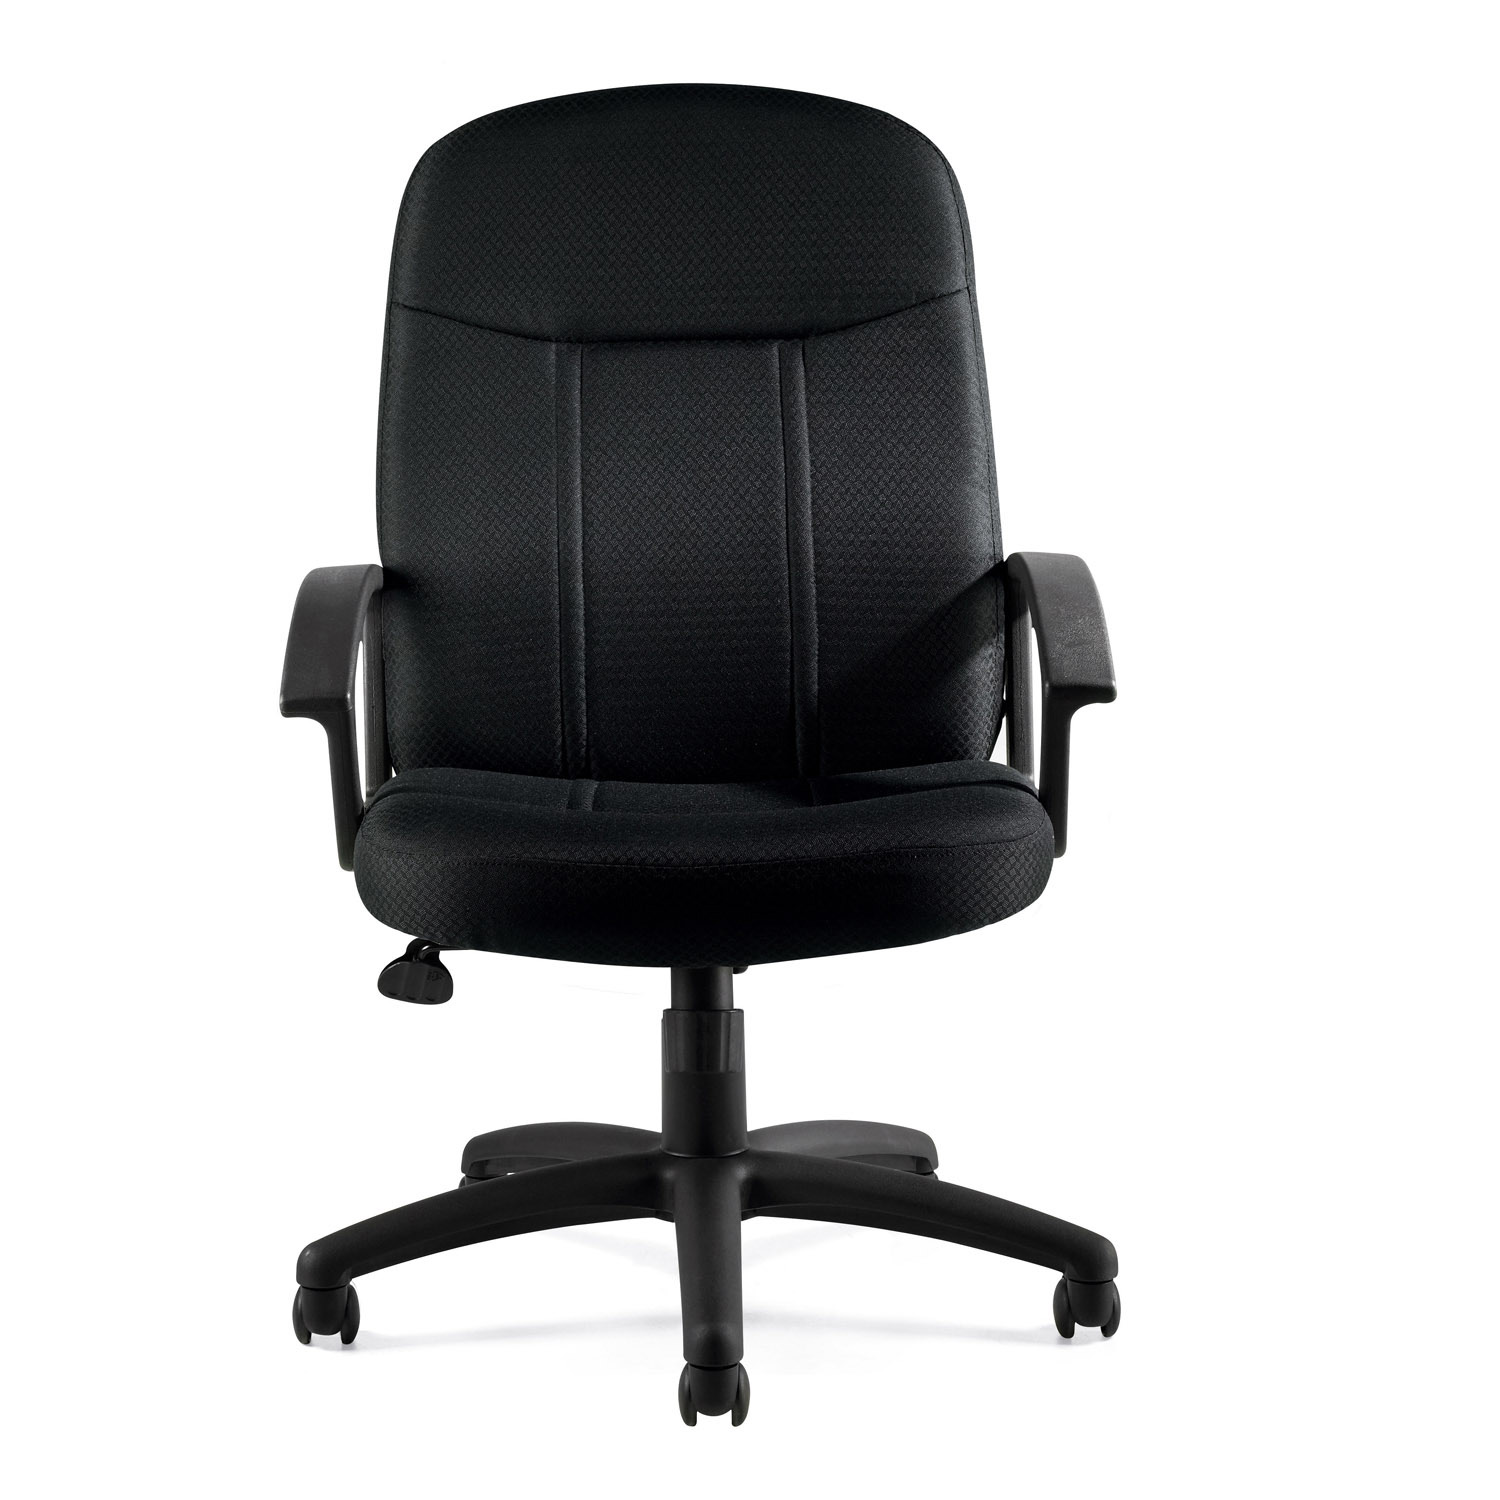 puter Desk Chair Discount Chairs fice Furniture